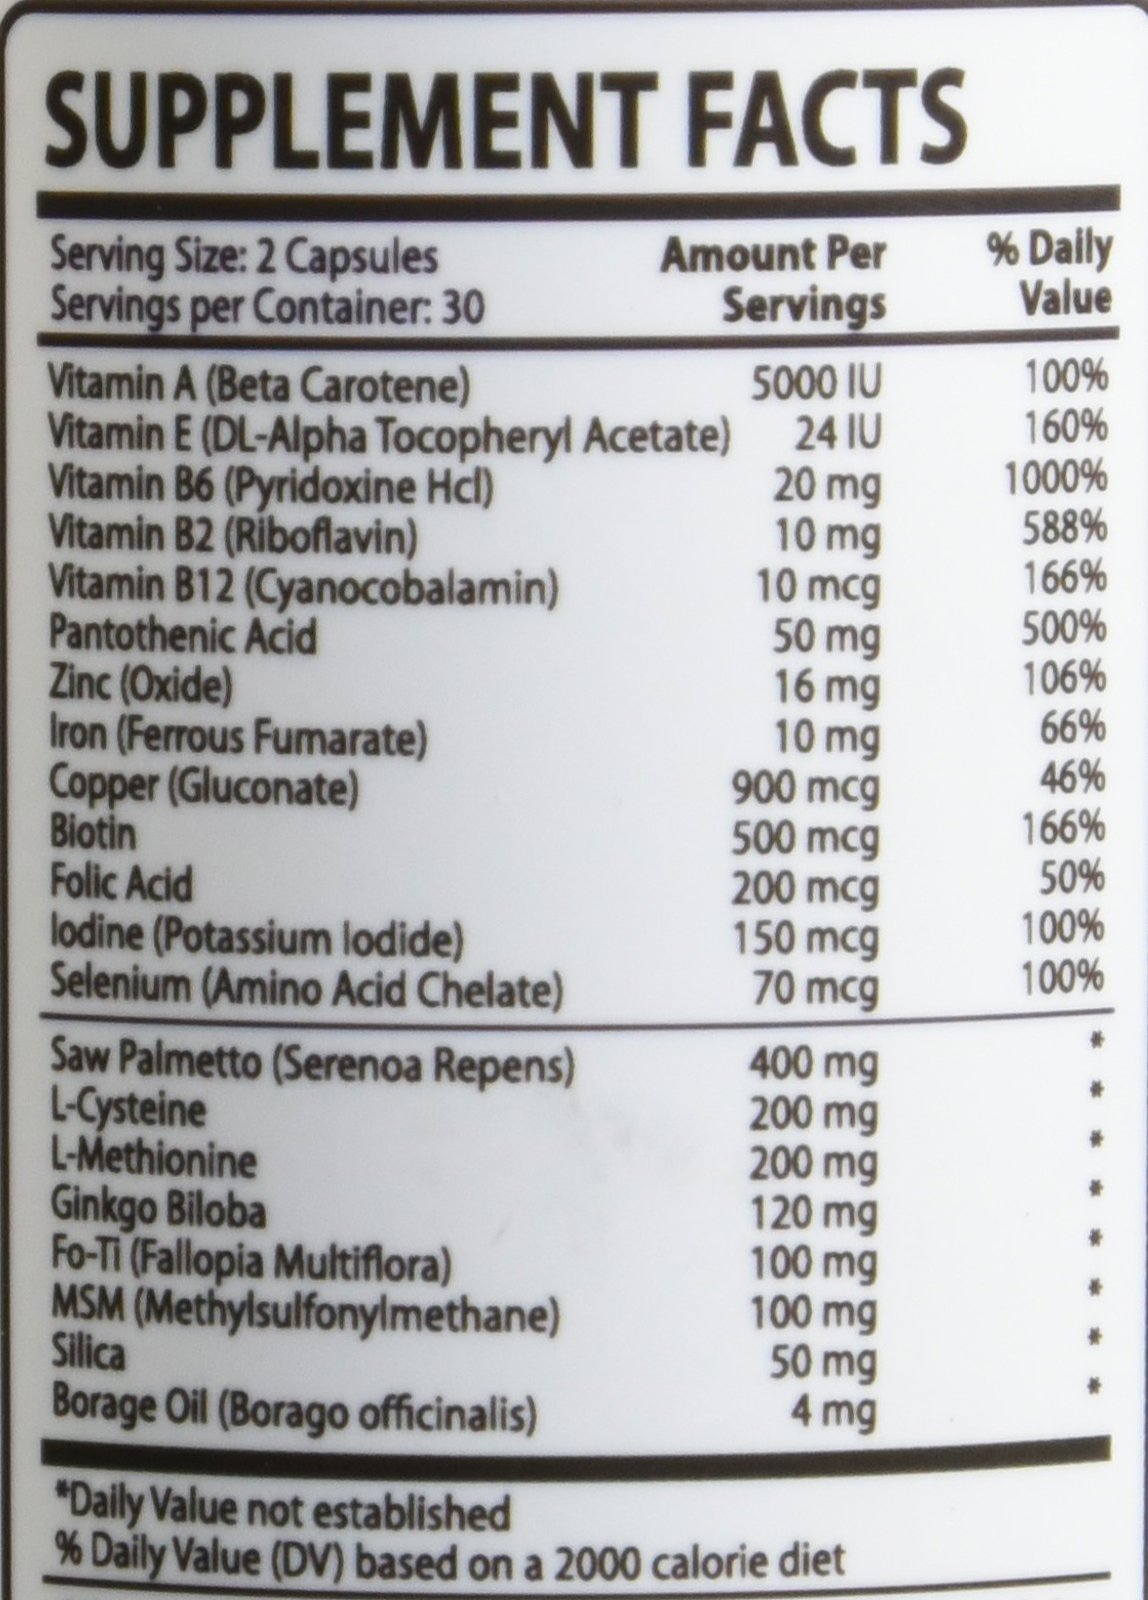 HairNu Natural Hair Growth Solution / Dietary Supplement, 1 Bottle – 60 Capsules by HairNu (Image #2)